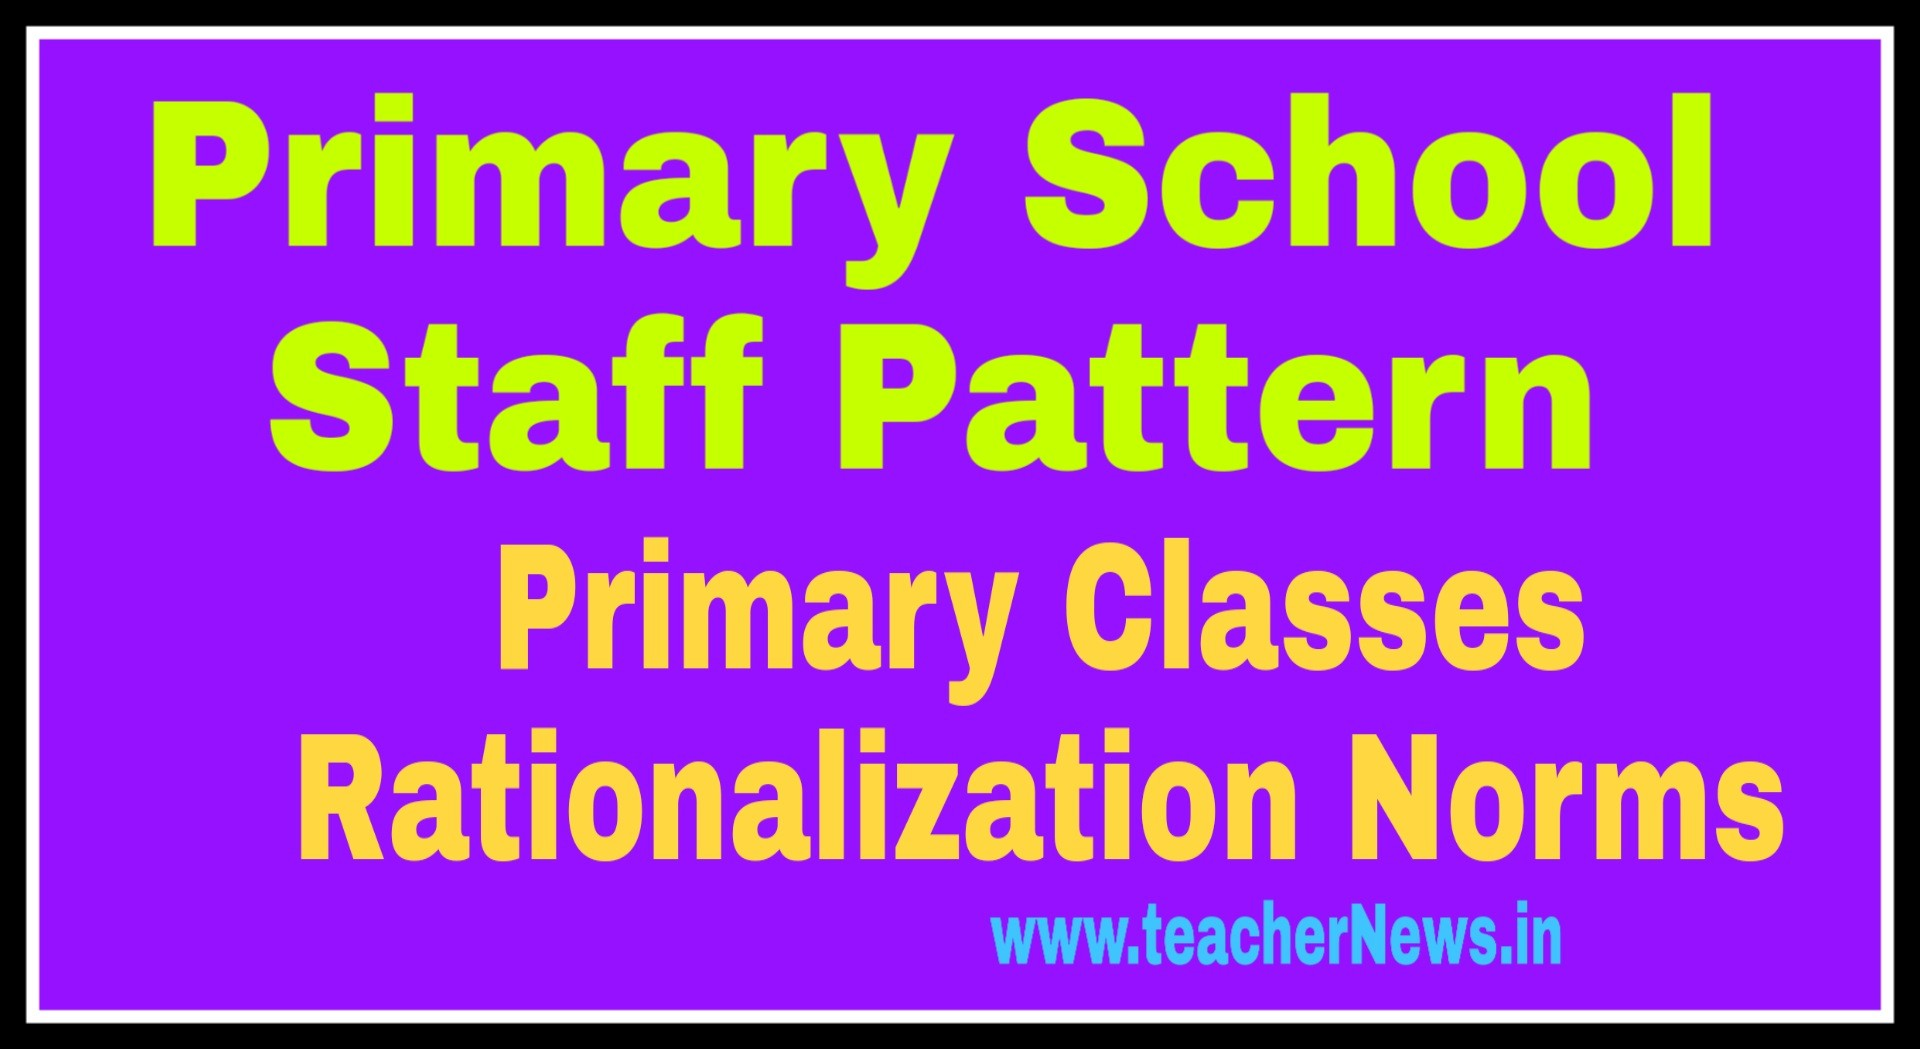 Primary Schools Staff Pattern 2020 for SGT Teachers Rationalization Norms 2020